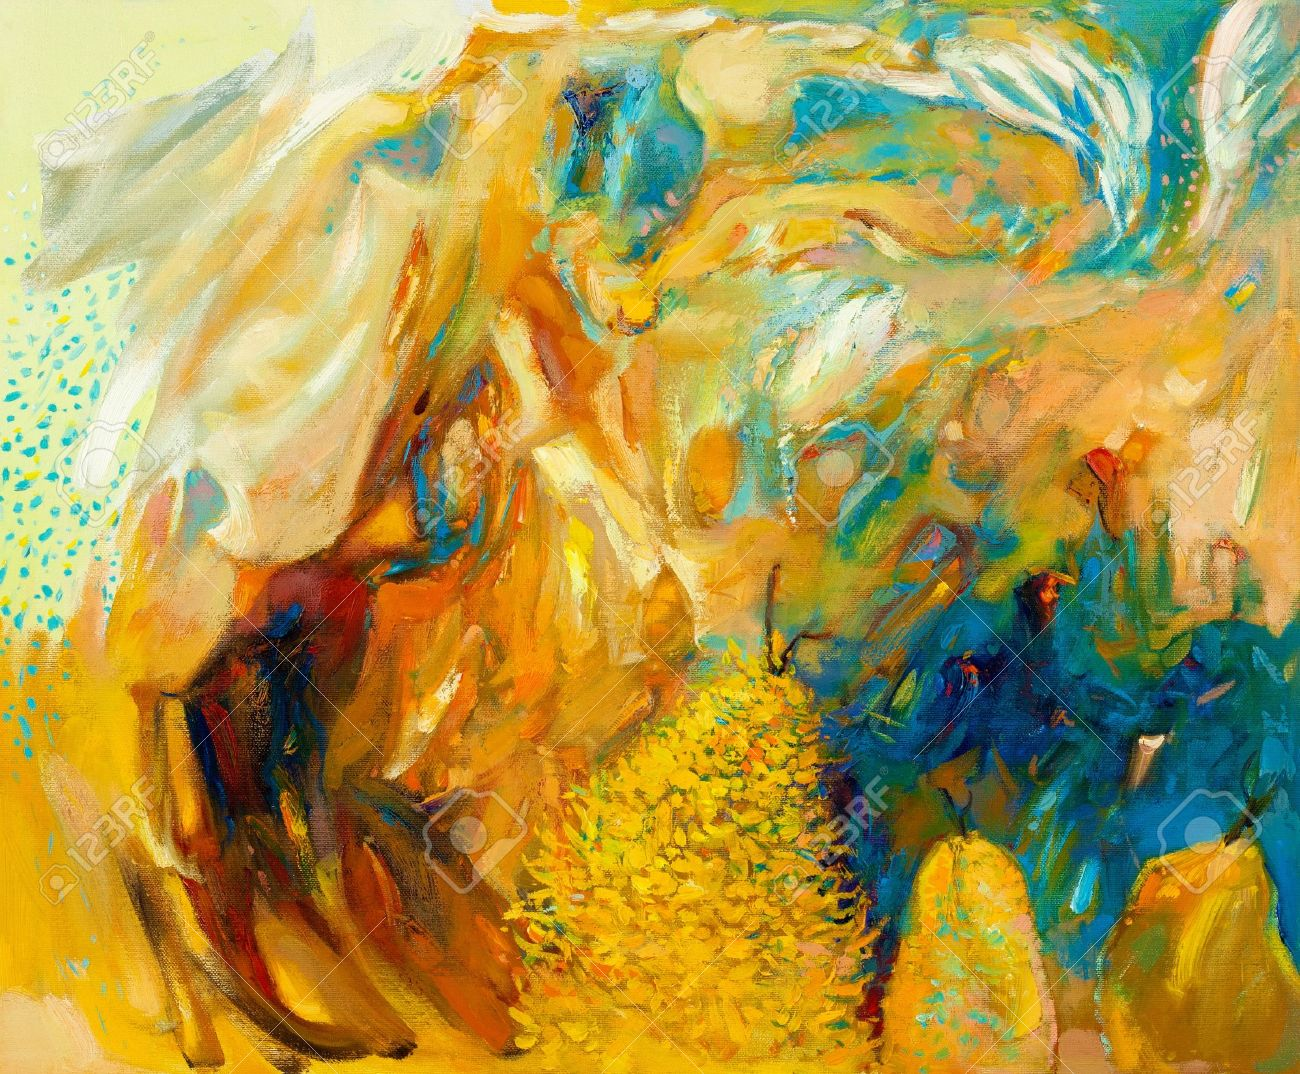 Original Abstract Oil Painting On Canvas.Modern Impressionism ...